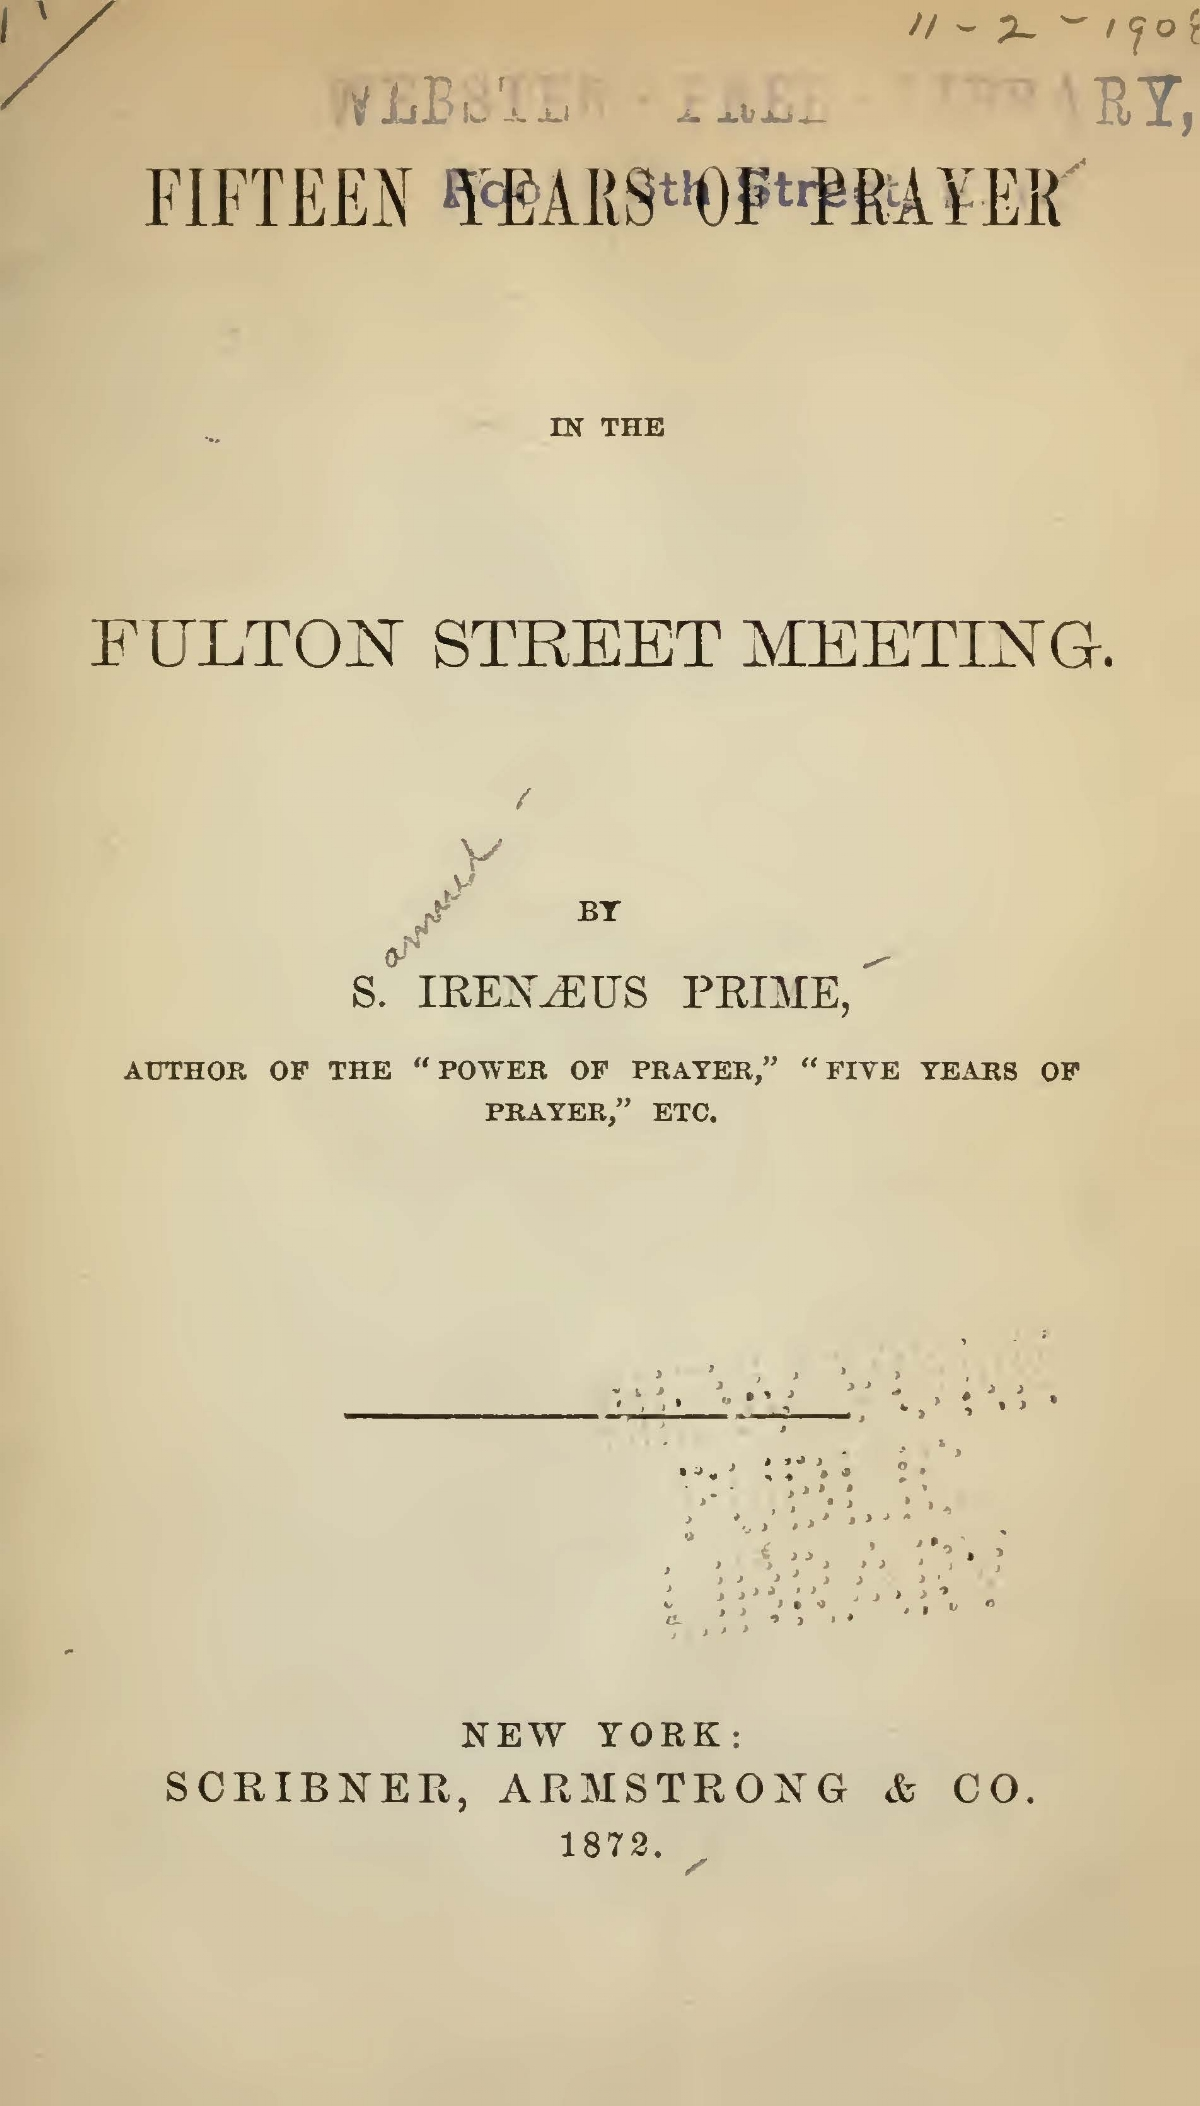 Prime, Samuel Irenaeus, Fifteen Years of Prayer in the Fulton Street Meeting Title Page.jpg